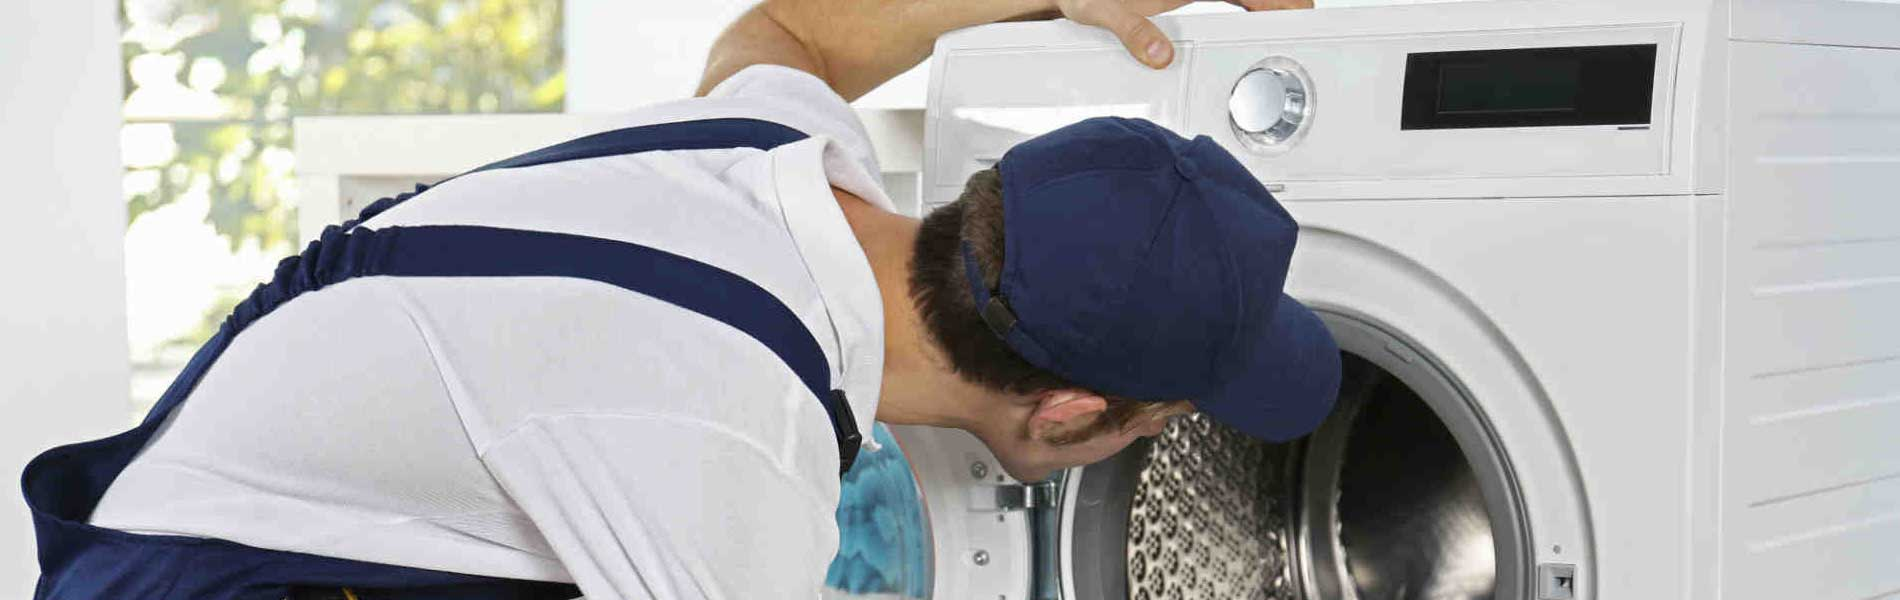 Godrej Washing Machine Service in Kaladipet